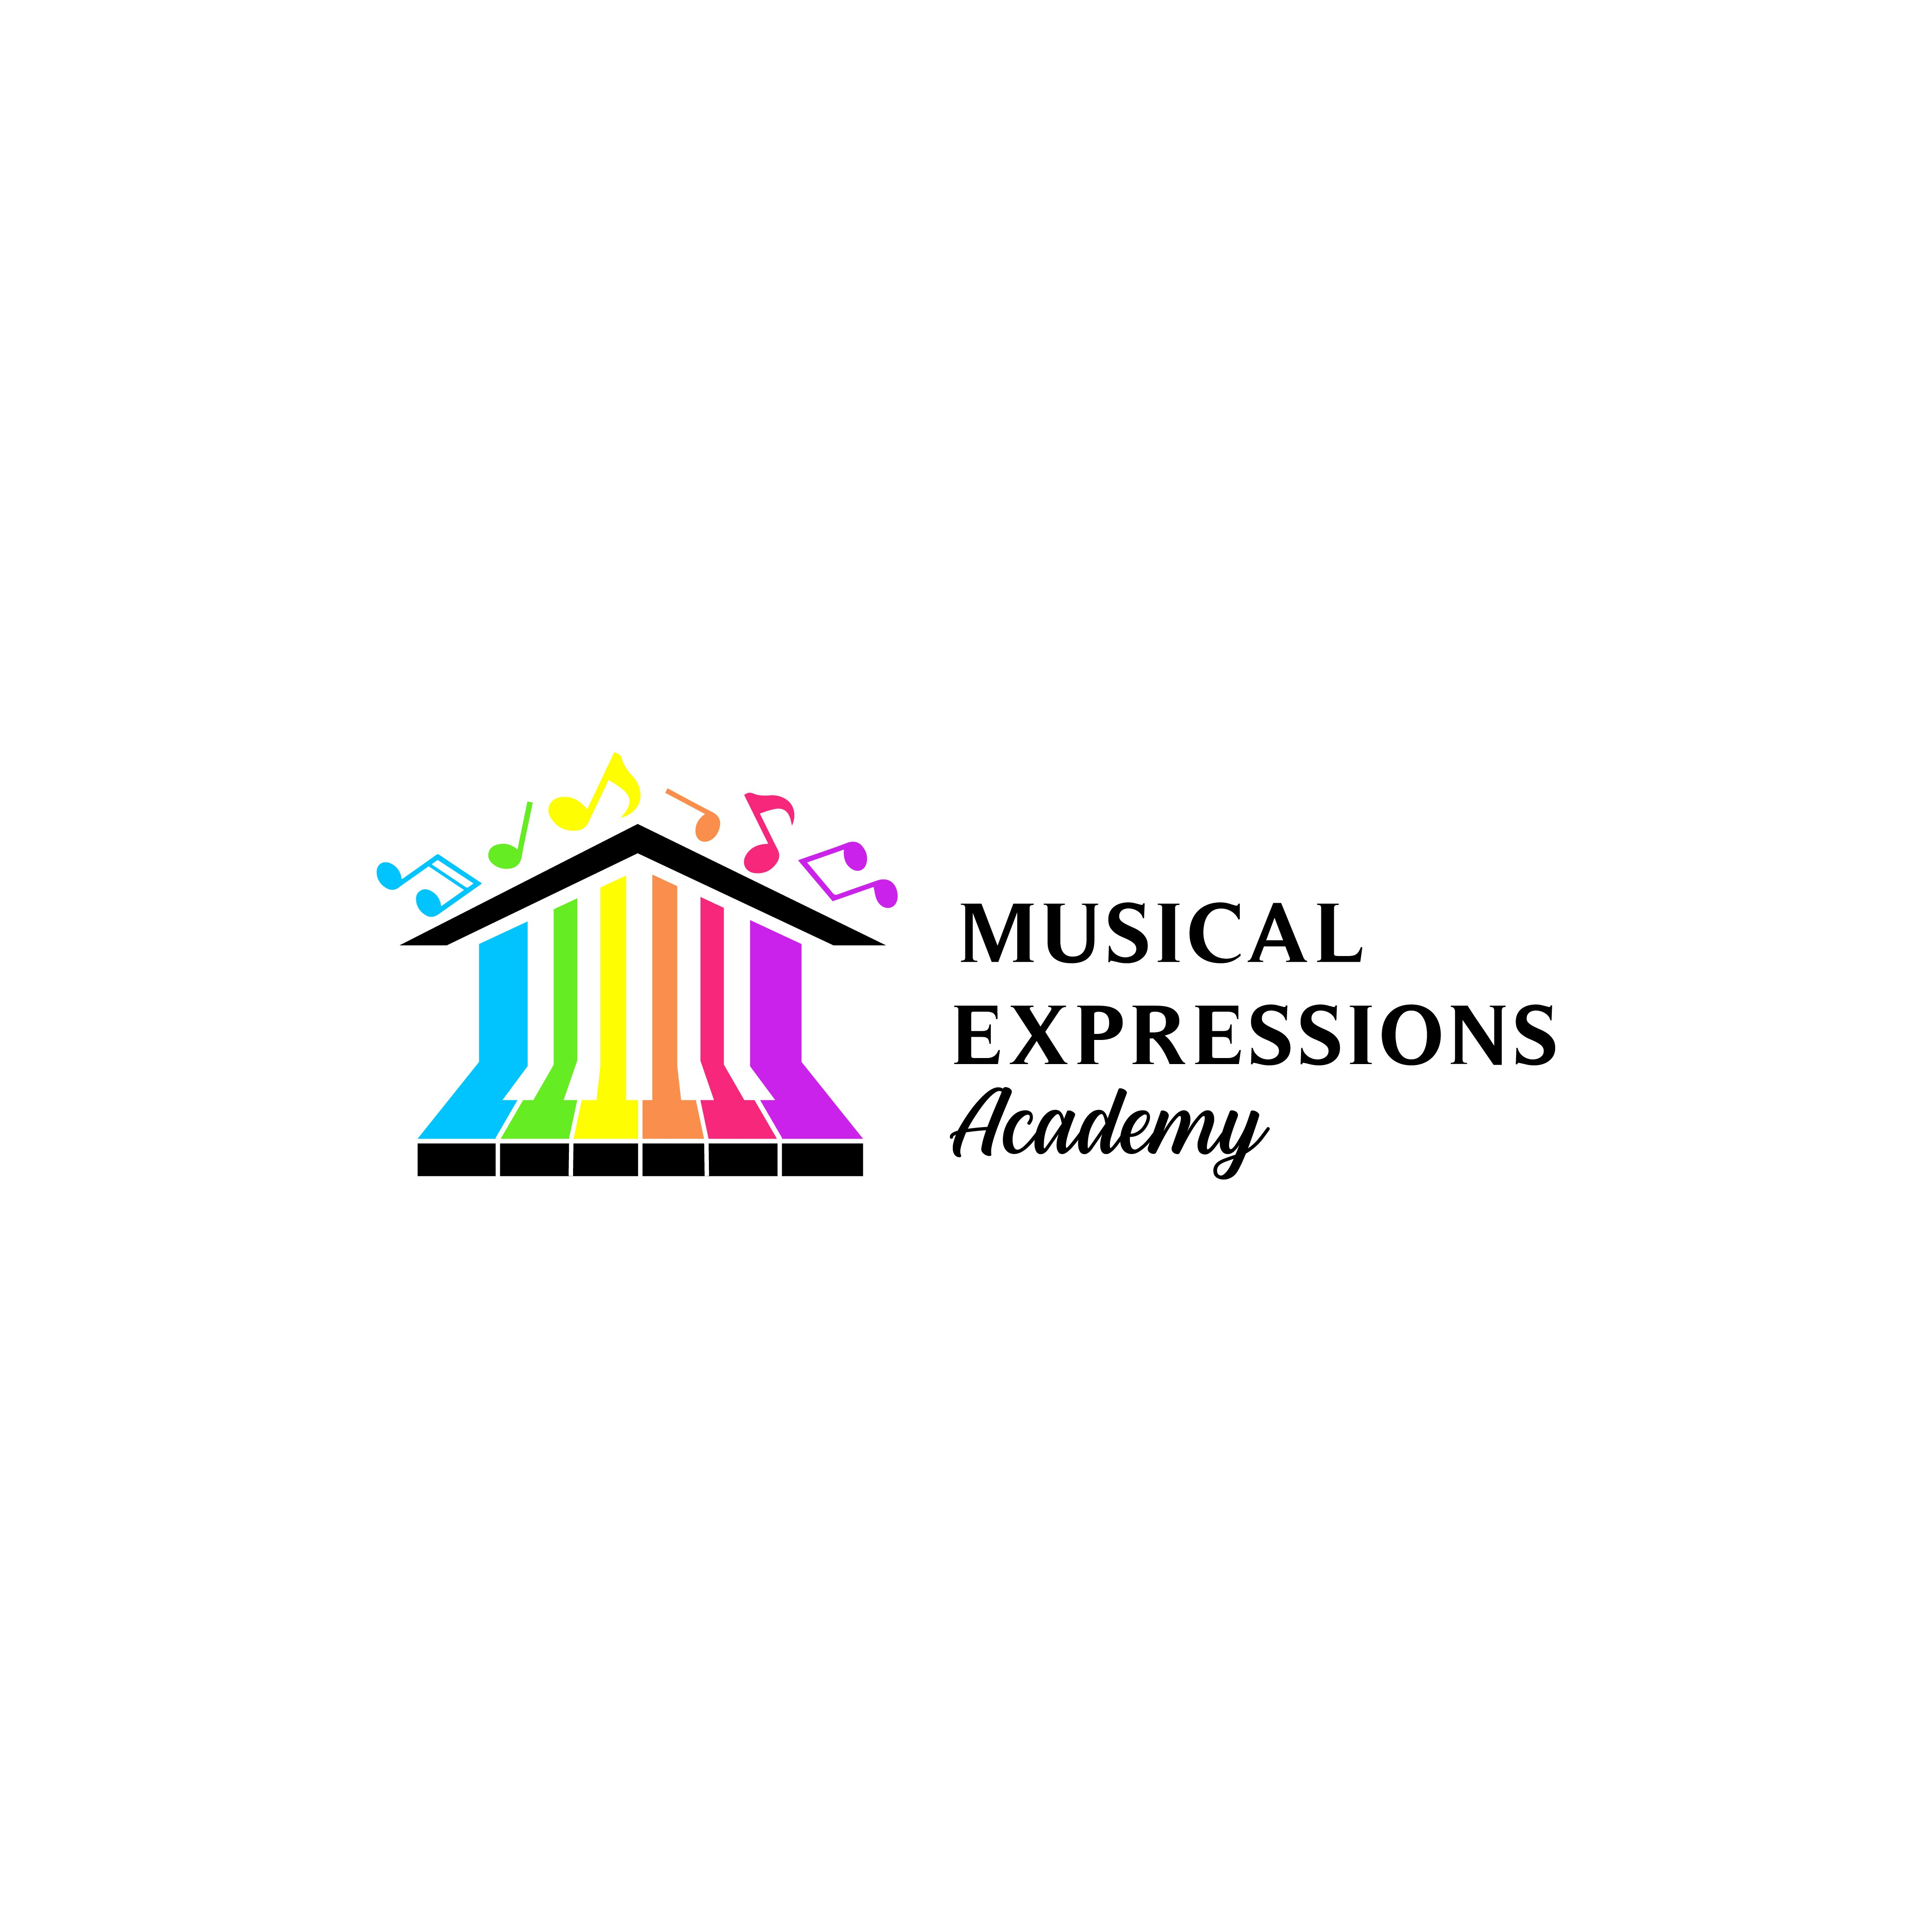 """Help the """"Musical Expressions Academy"""" have the most visually stimulating logo in my hometown!"""